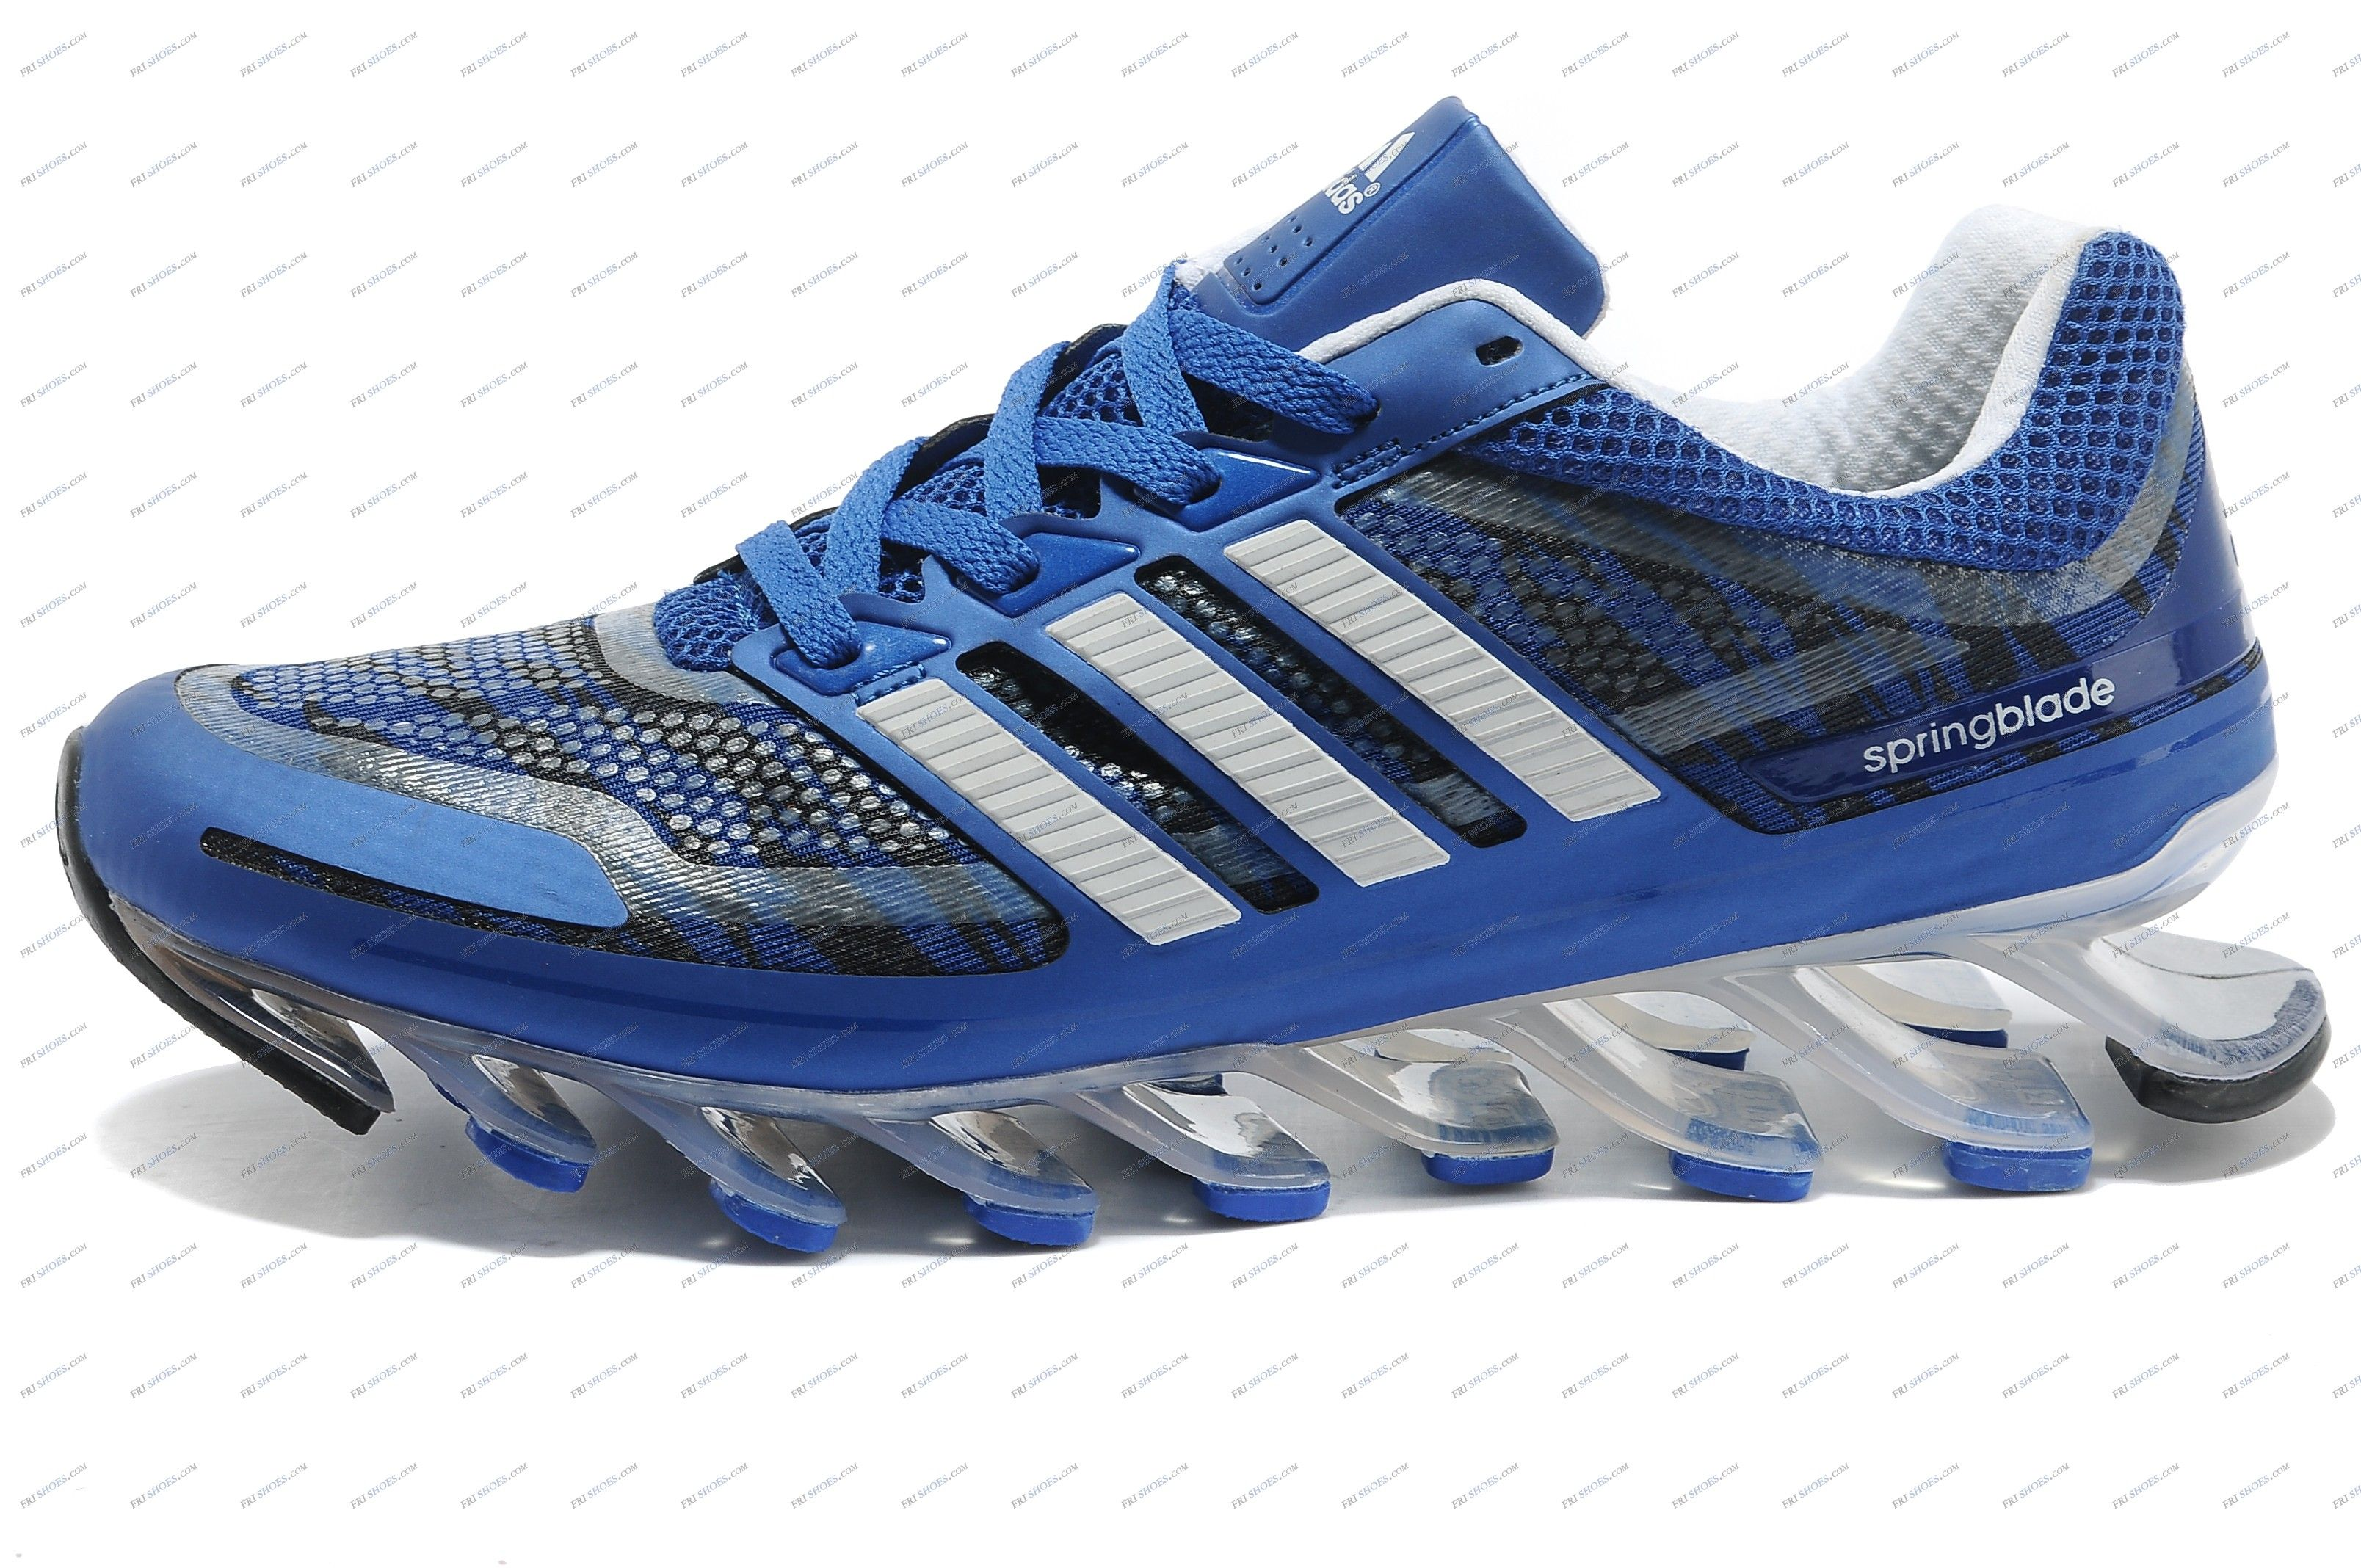 size 40 ee6dc a4f00 Adidas Springblade Camo Blue White Mens Running shoes outlet adidas